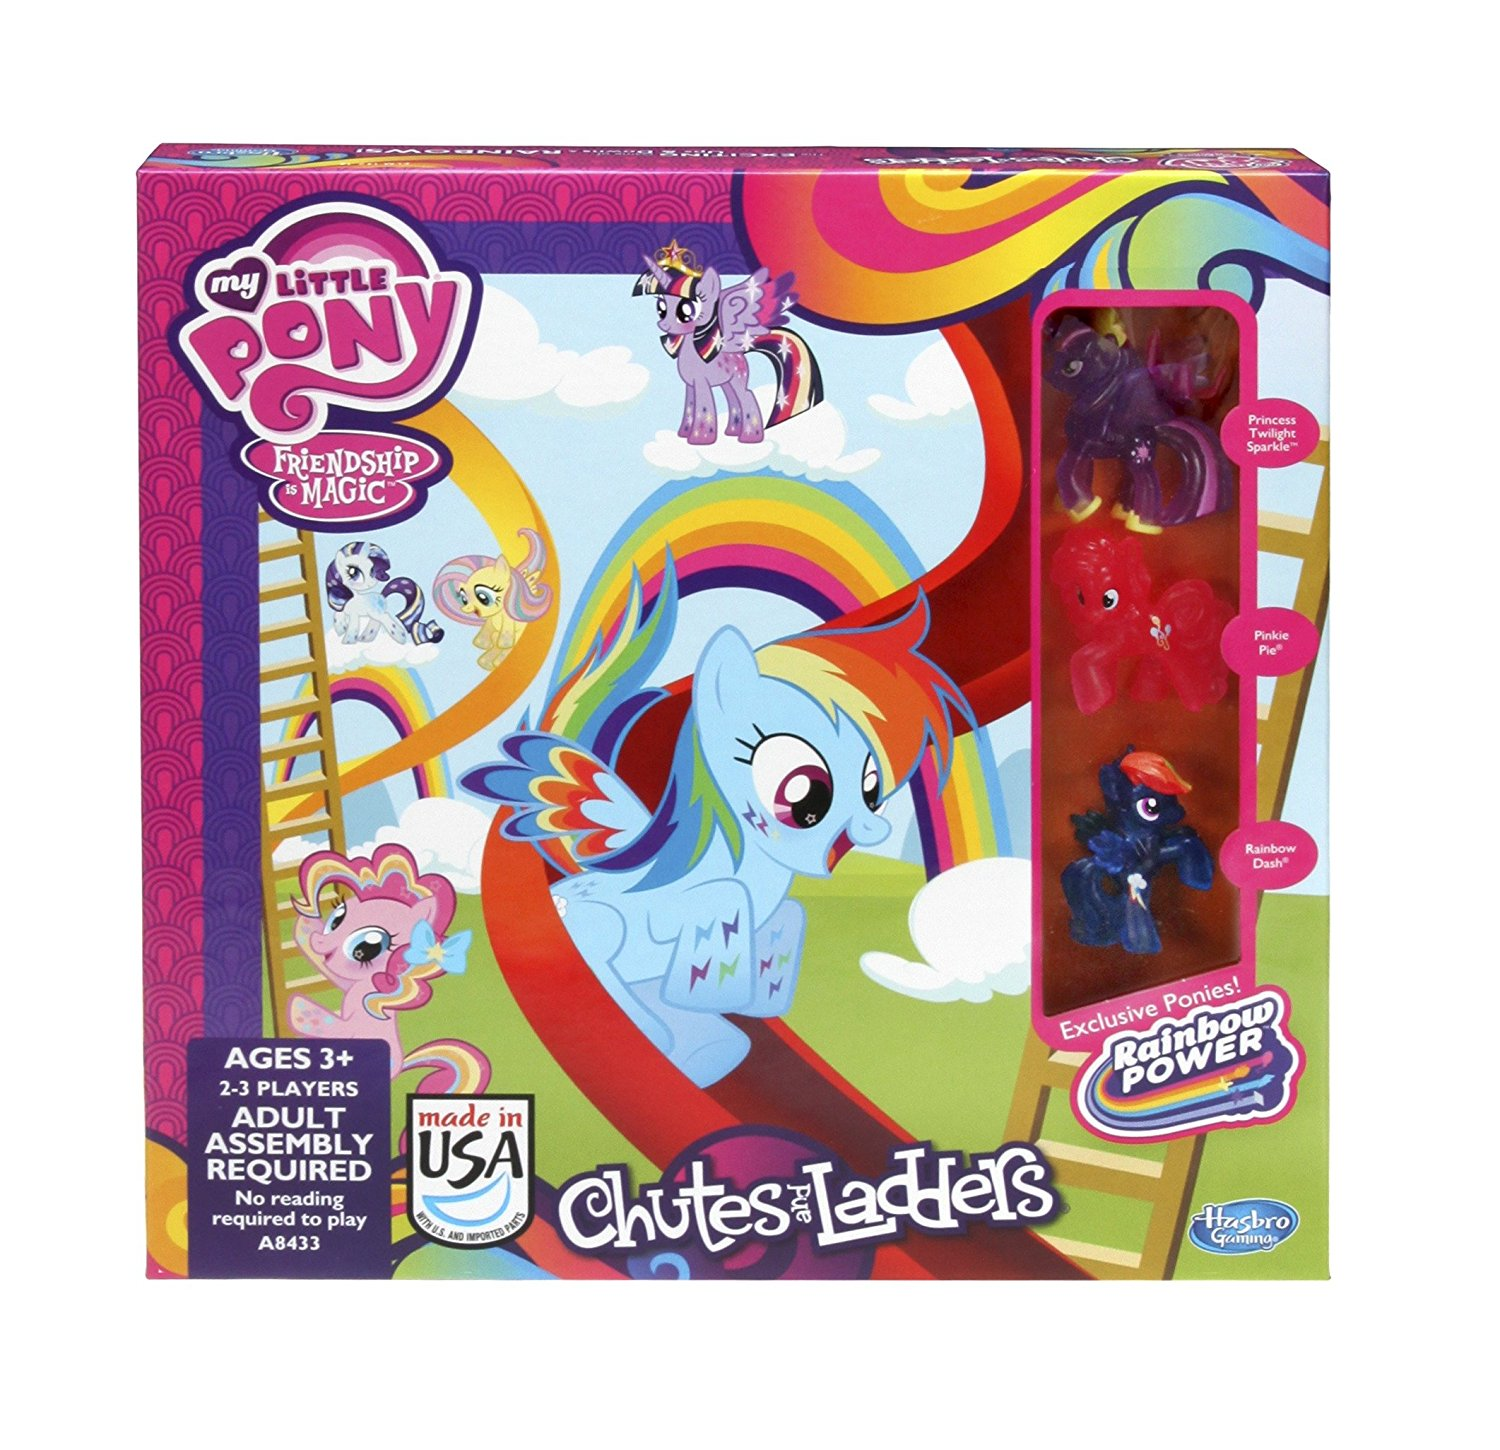 My Little Pony Chutes and Ladders Game..., By Hasbro Ship from US by